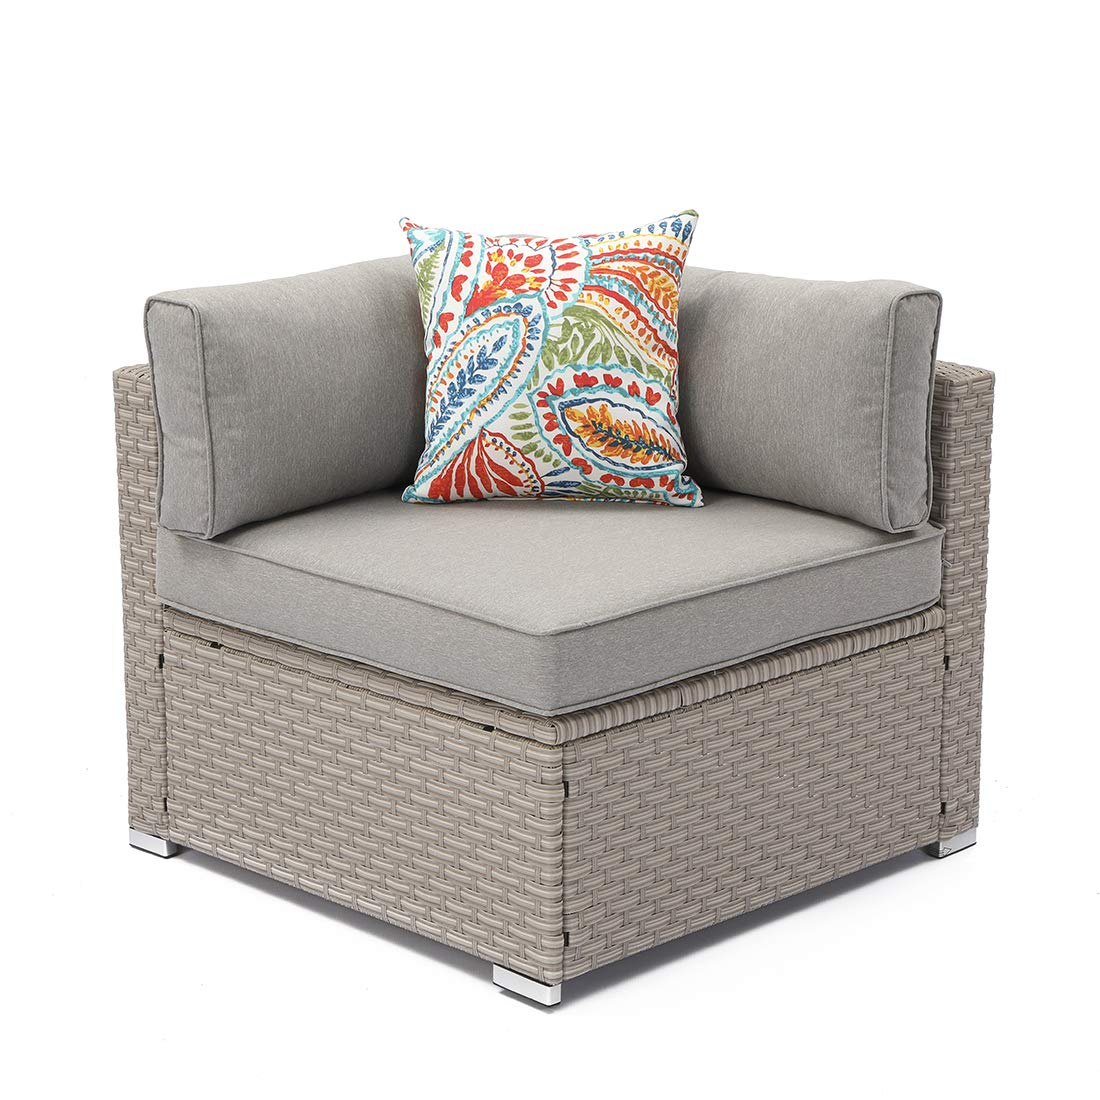 COSIEST Outdoor Furniture Add-on Left Corner Chair for Expanding Wicker Sectional Sofa Set w Warm Gray Thick Cushions, 1 Floral Fantasy Pillow for Garden, Pool, Backyard by COSIEST